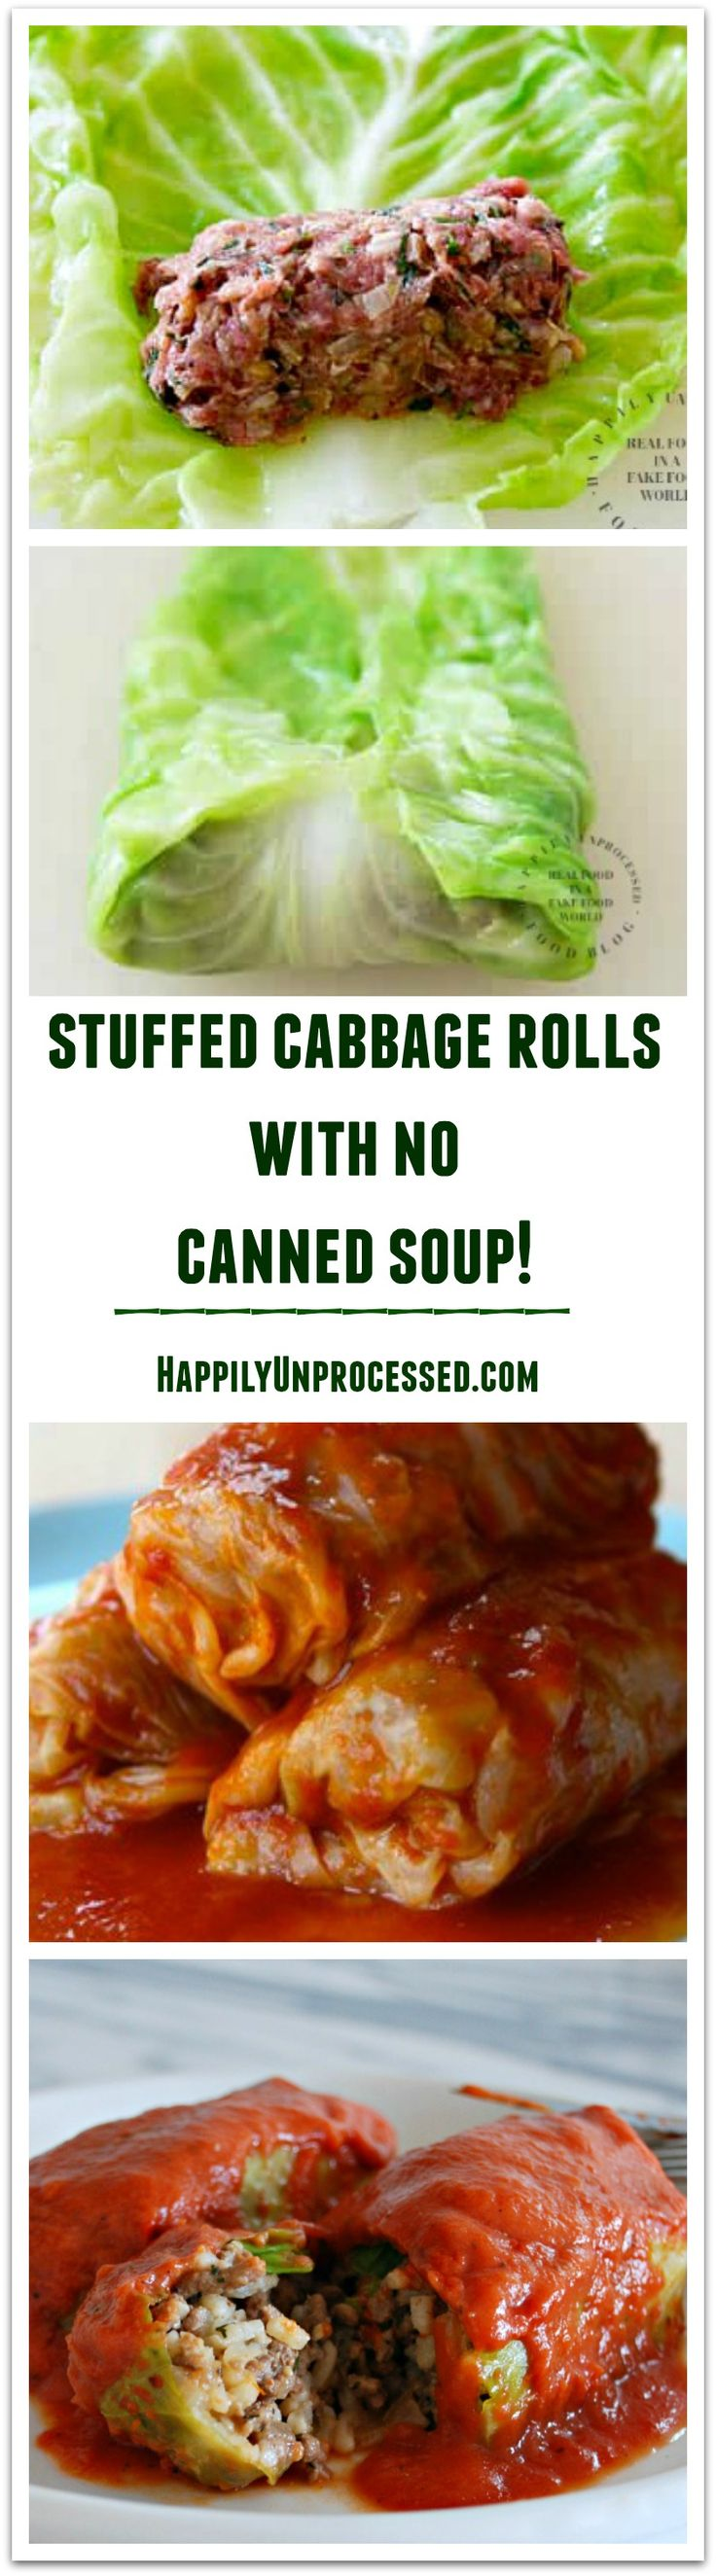 Stuffed cabbage with beef, pork, rice and spices with NO CANNED SOUP!  #stuffedcabbage #nocannedsoup #happilyunprocessed